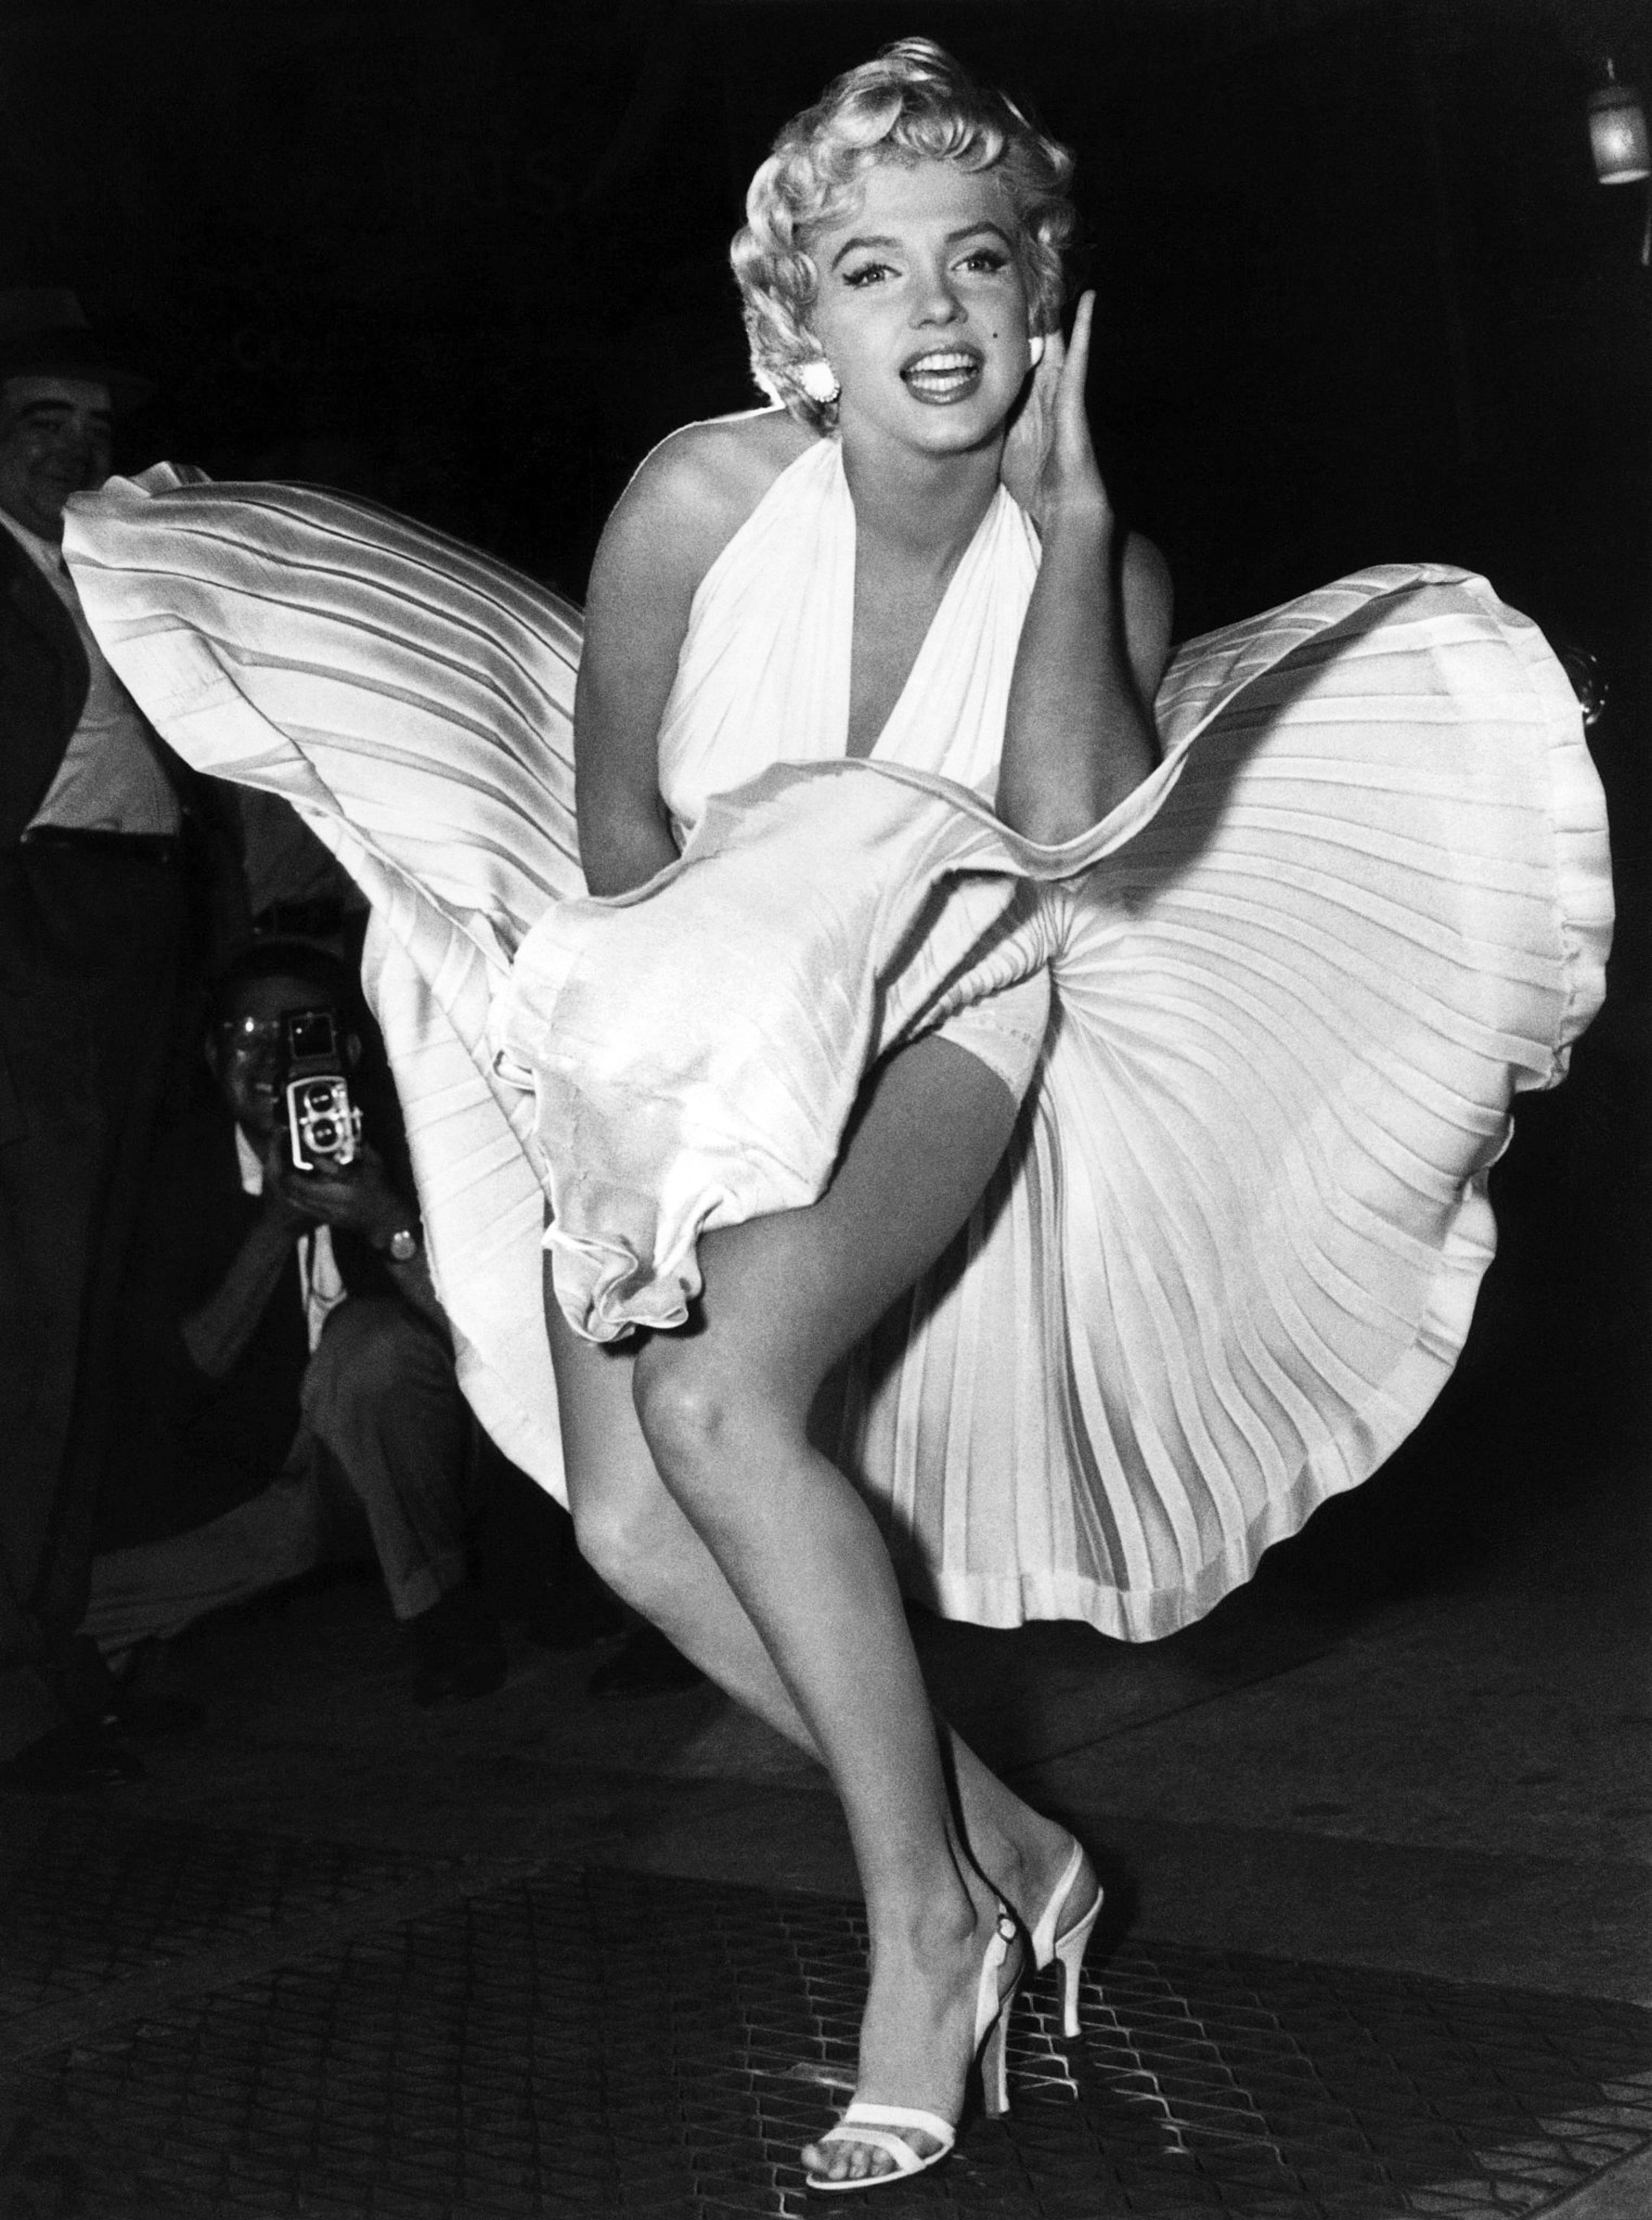 File:Marilyn Monroe photo pose Seven Year Itch.jpg - Wikimedia Commons